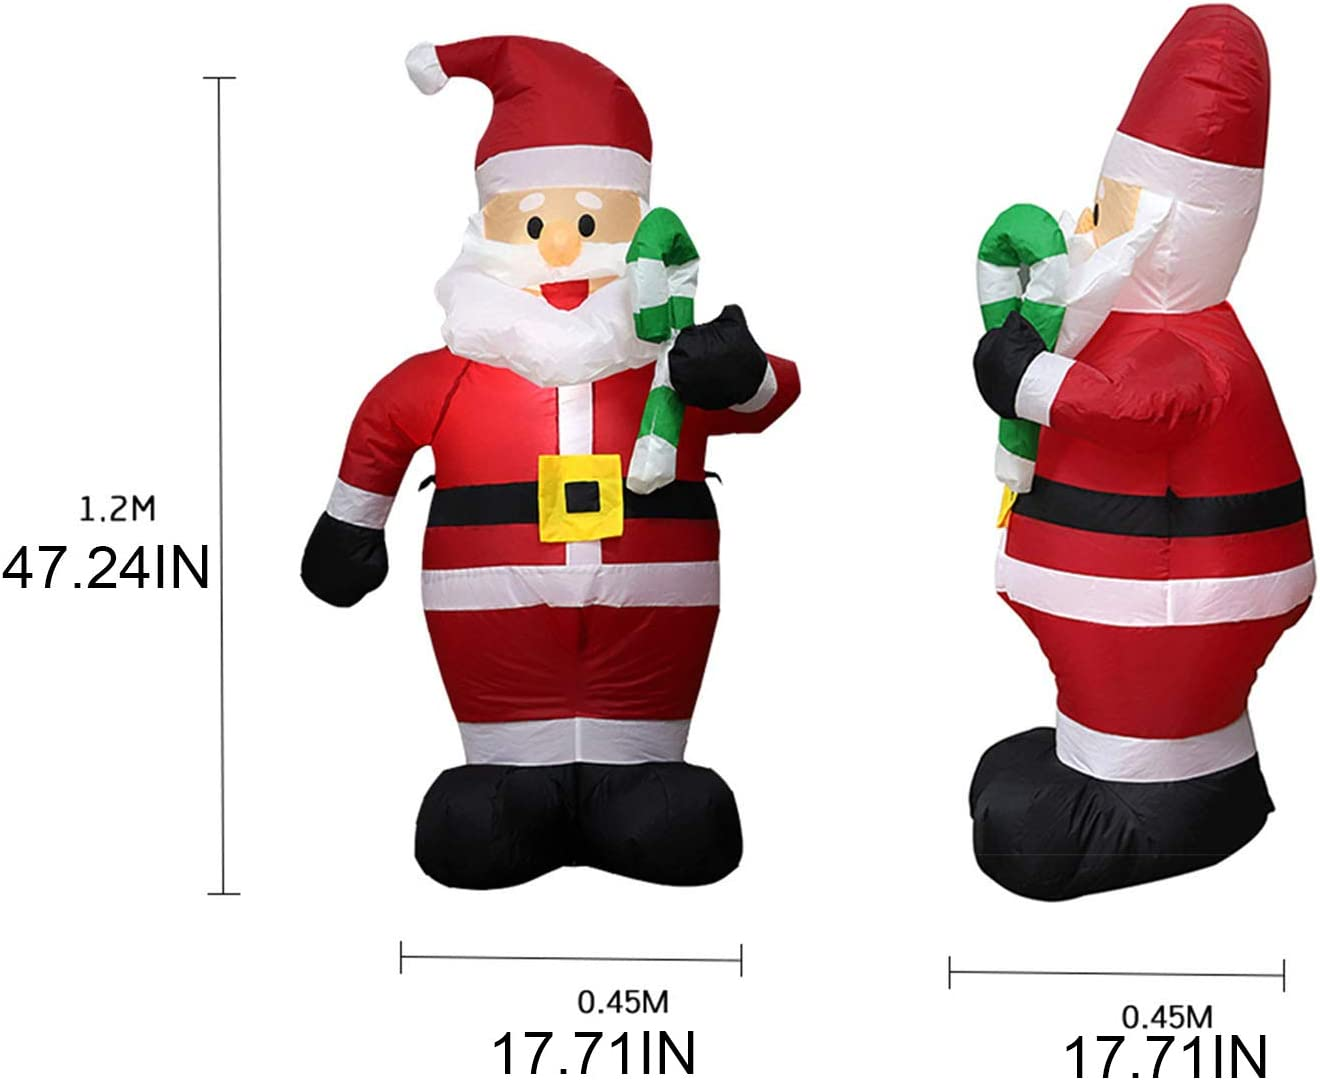 Christmas Inflatable Santa Claus with Candy Indoor /& Outdoor Airblown Christmas Decoration with LED Light Animated for Yard Party Lawn